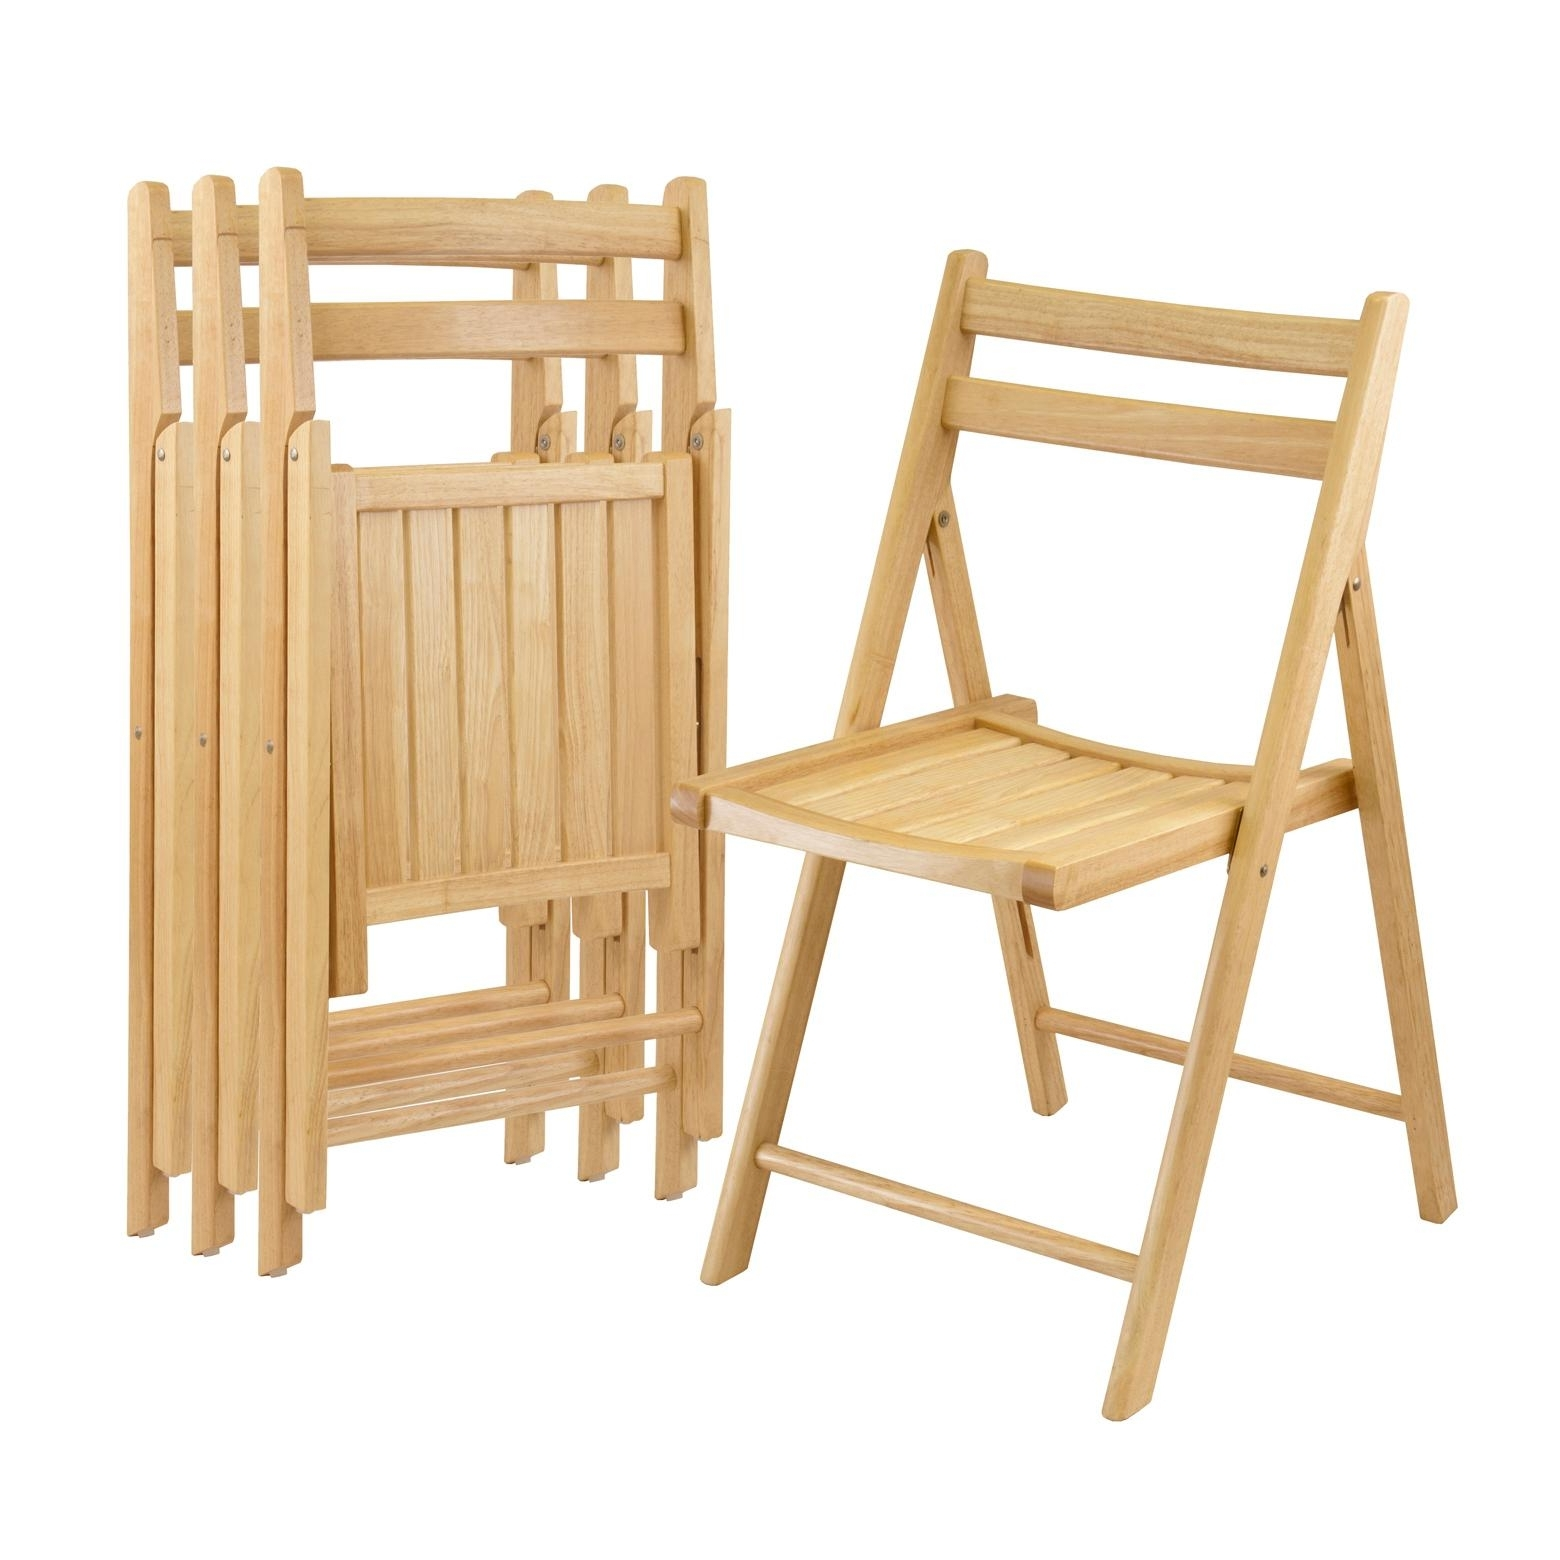 2018 Wood Folding Dining Tables Regarding Amazon: Winsome Wood Folding Chairs, Natural Finish, Set Of  (View 19 of 25)